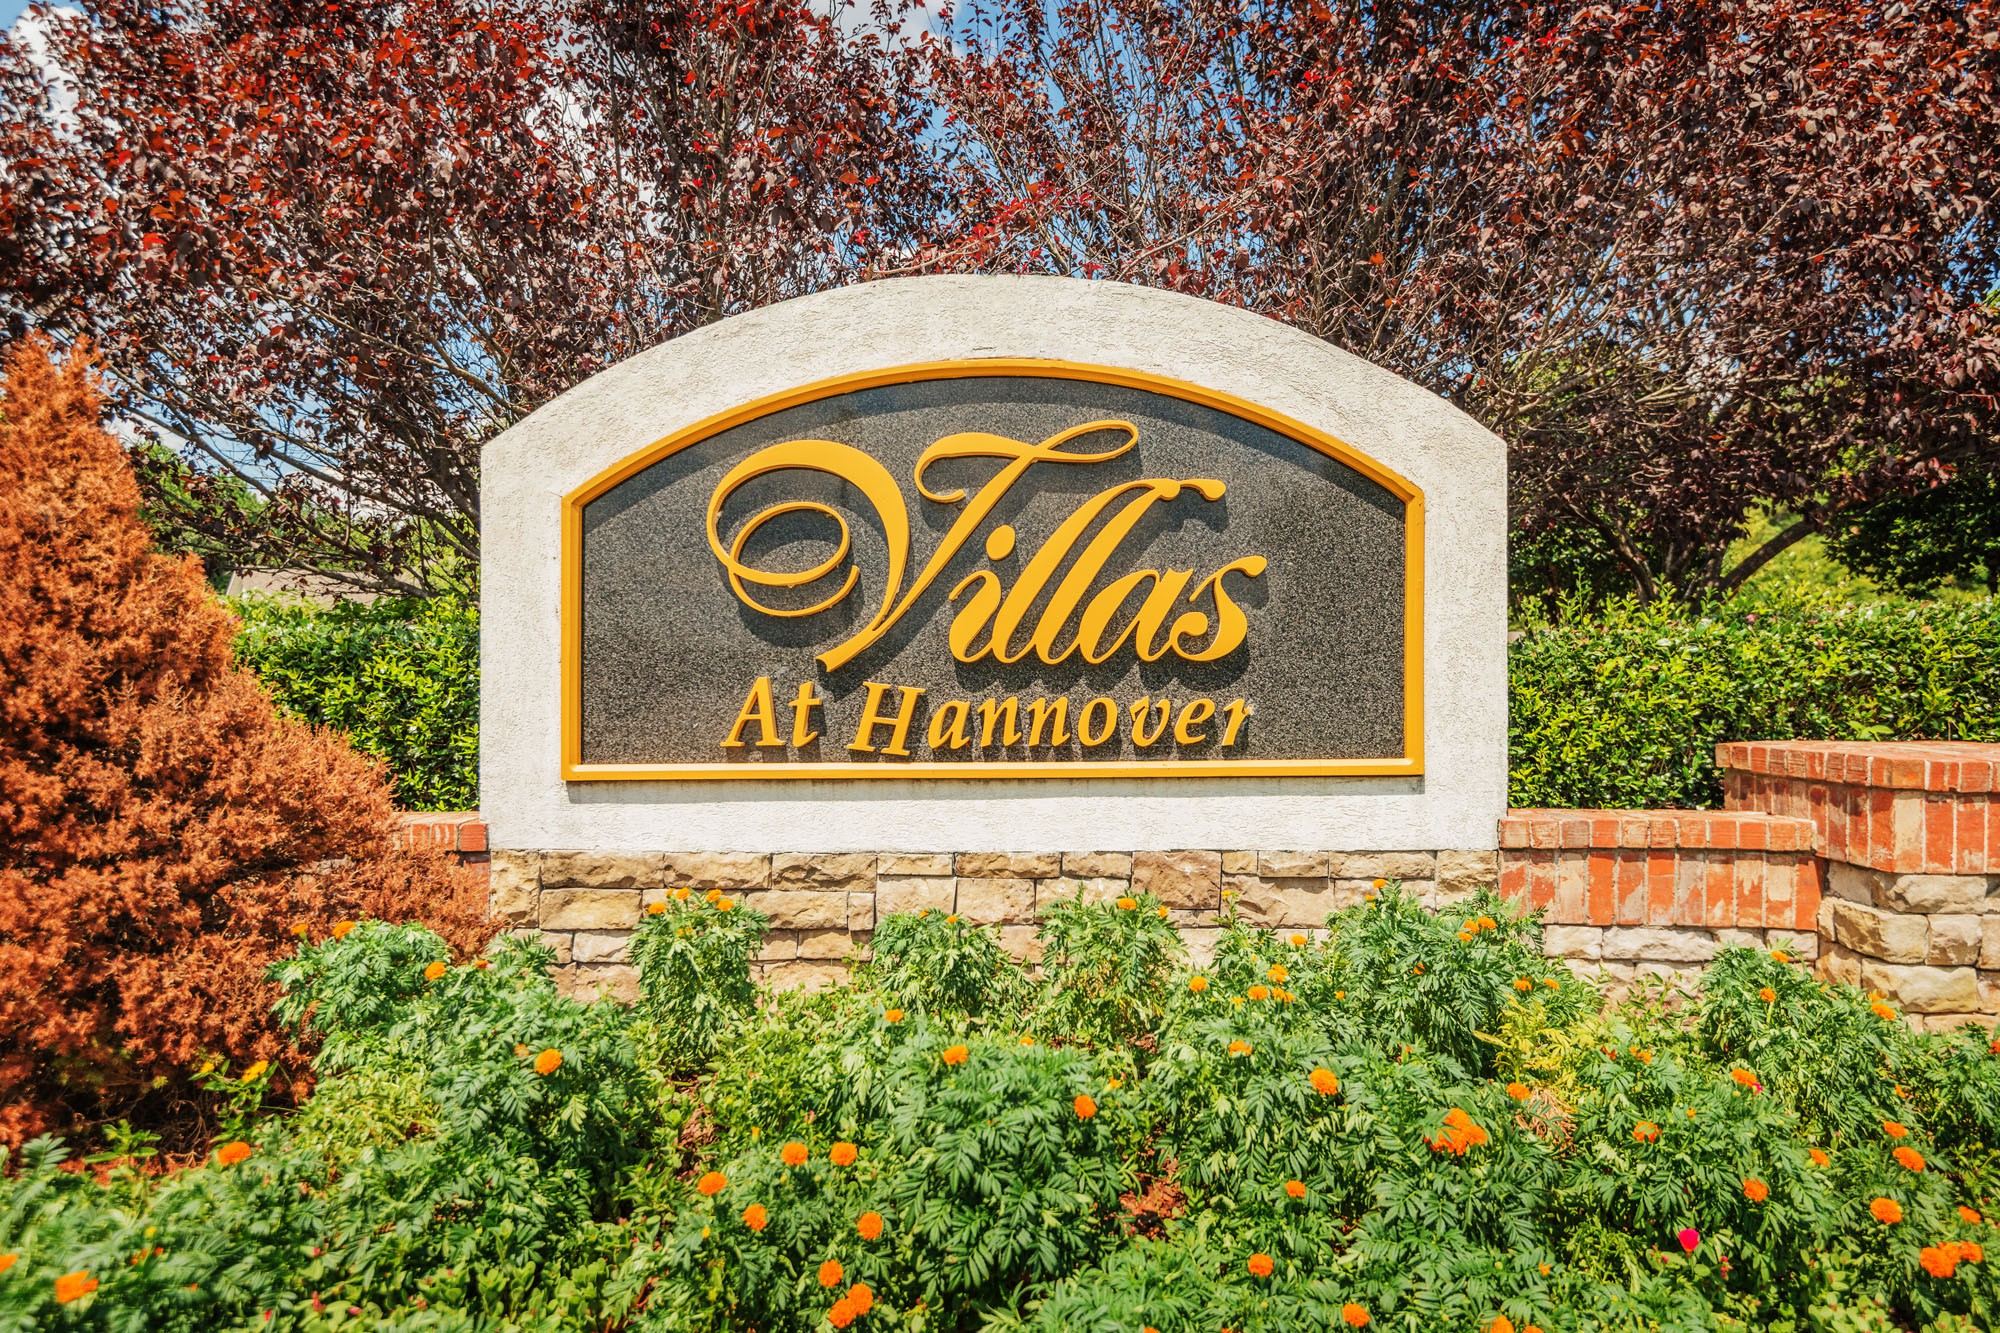 Apartments Near Clayton  State Villas at Hannover for Clayton  State University Students in Morrow, GA